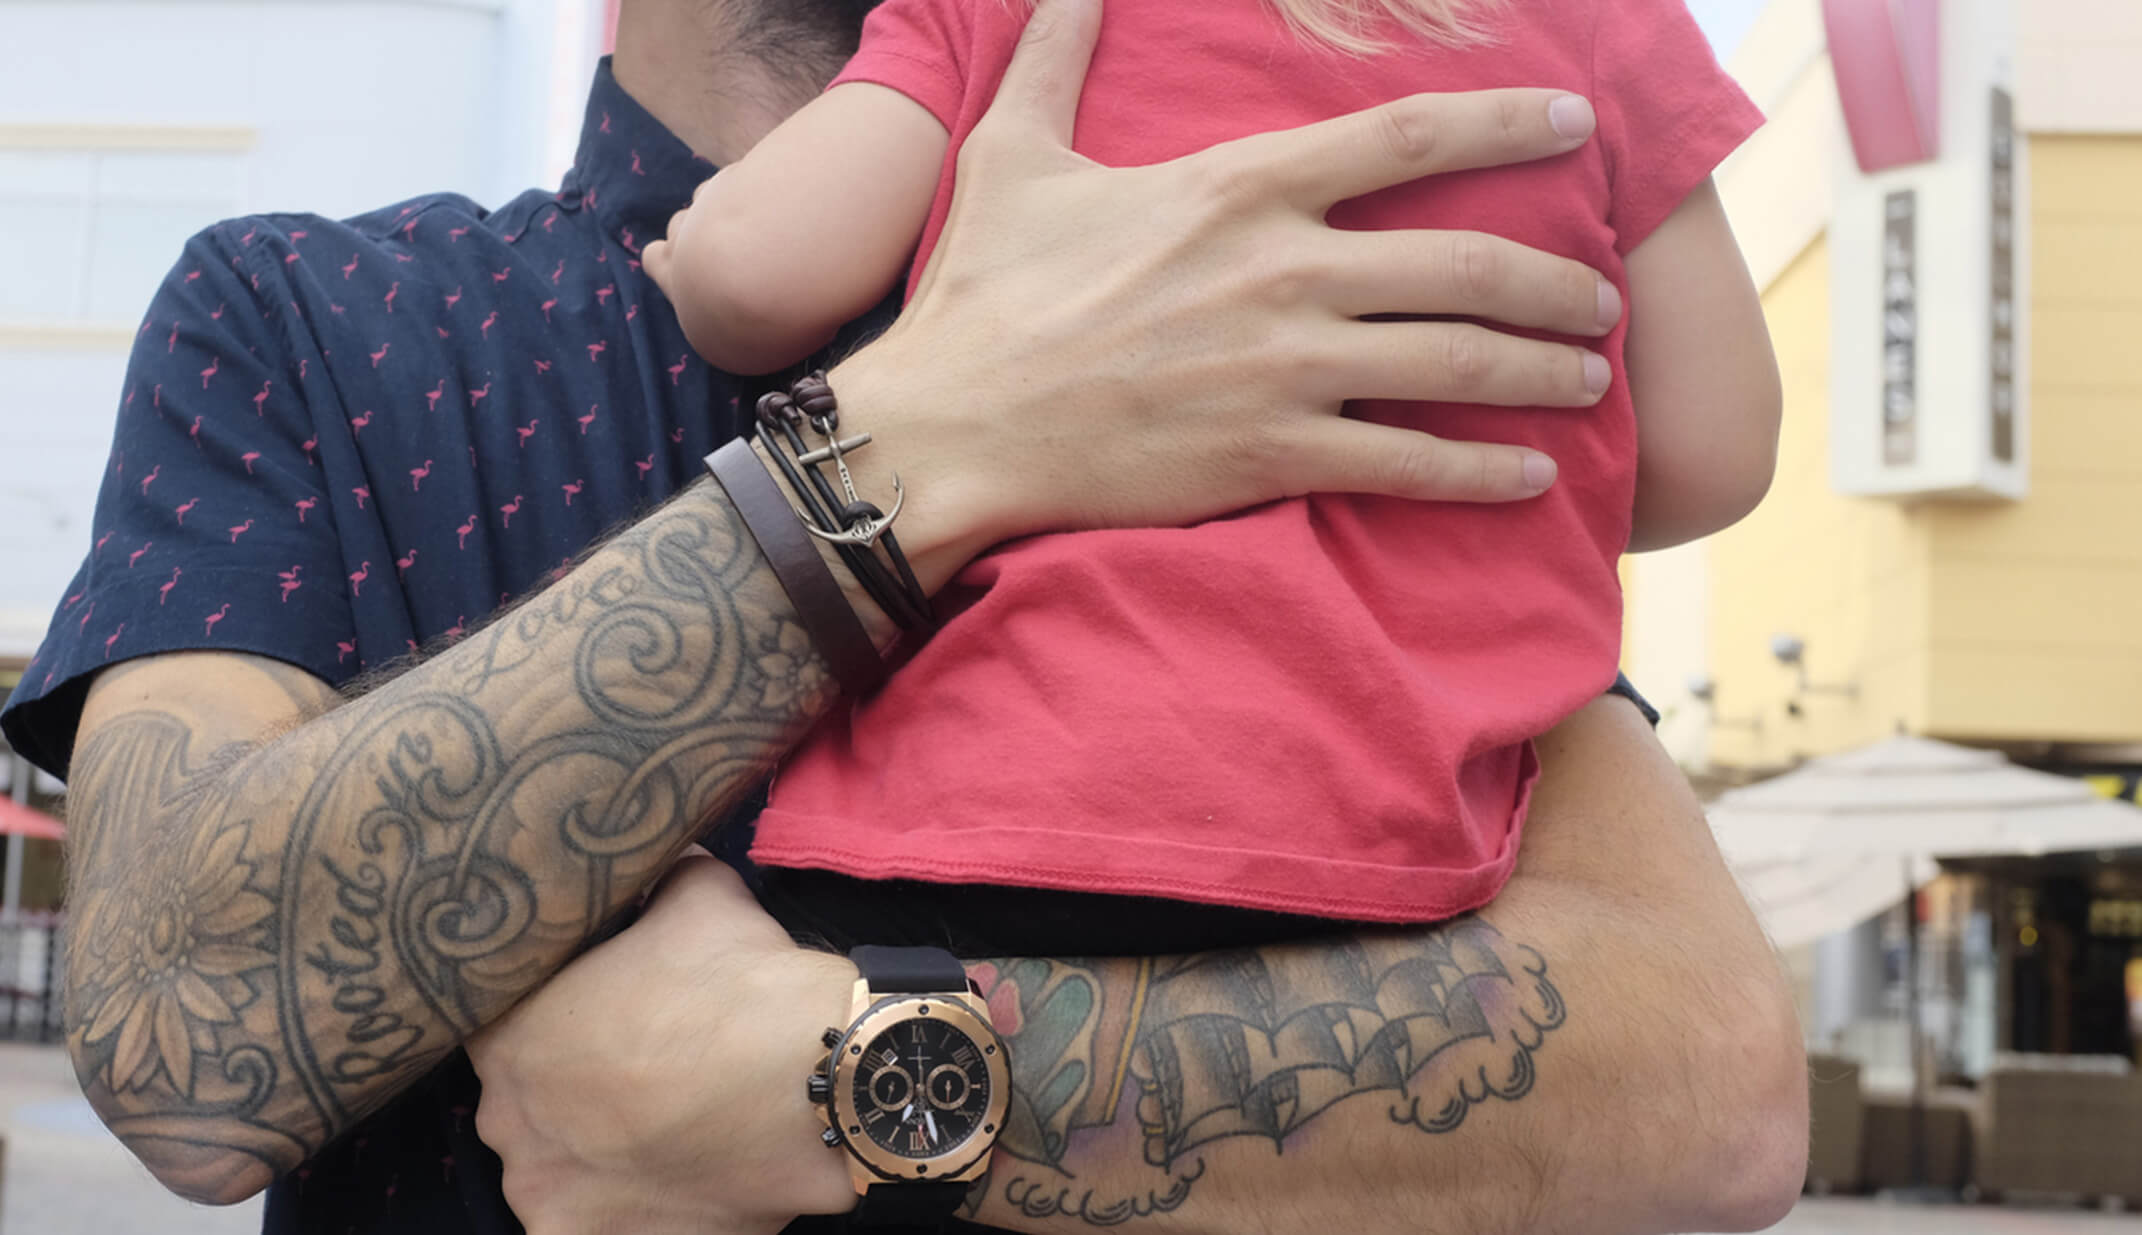 hipster father holding daughter watch hand tattoos shirt town portrait street men family love hug hands freelance bulova UGC content